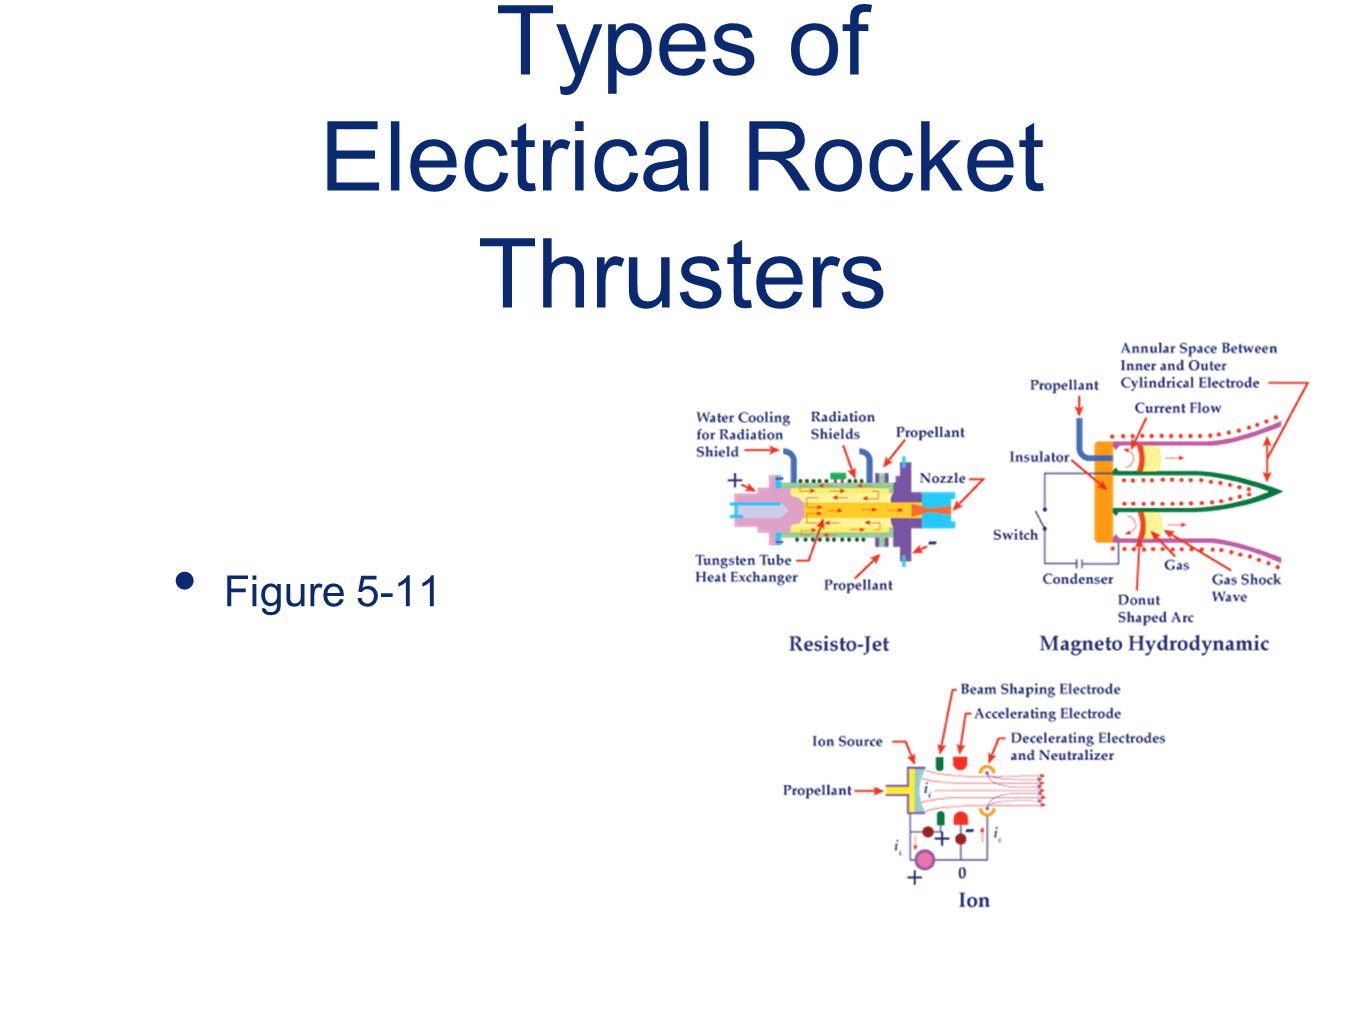 Types of Electrical Rocket Thrusters